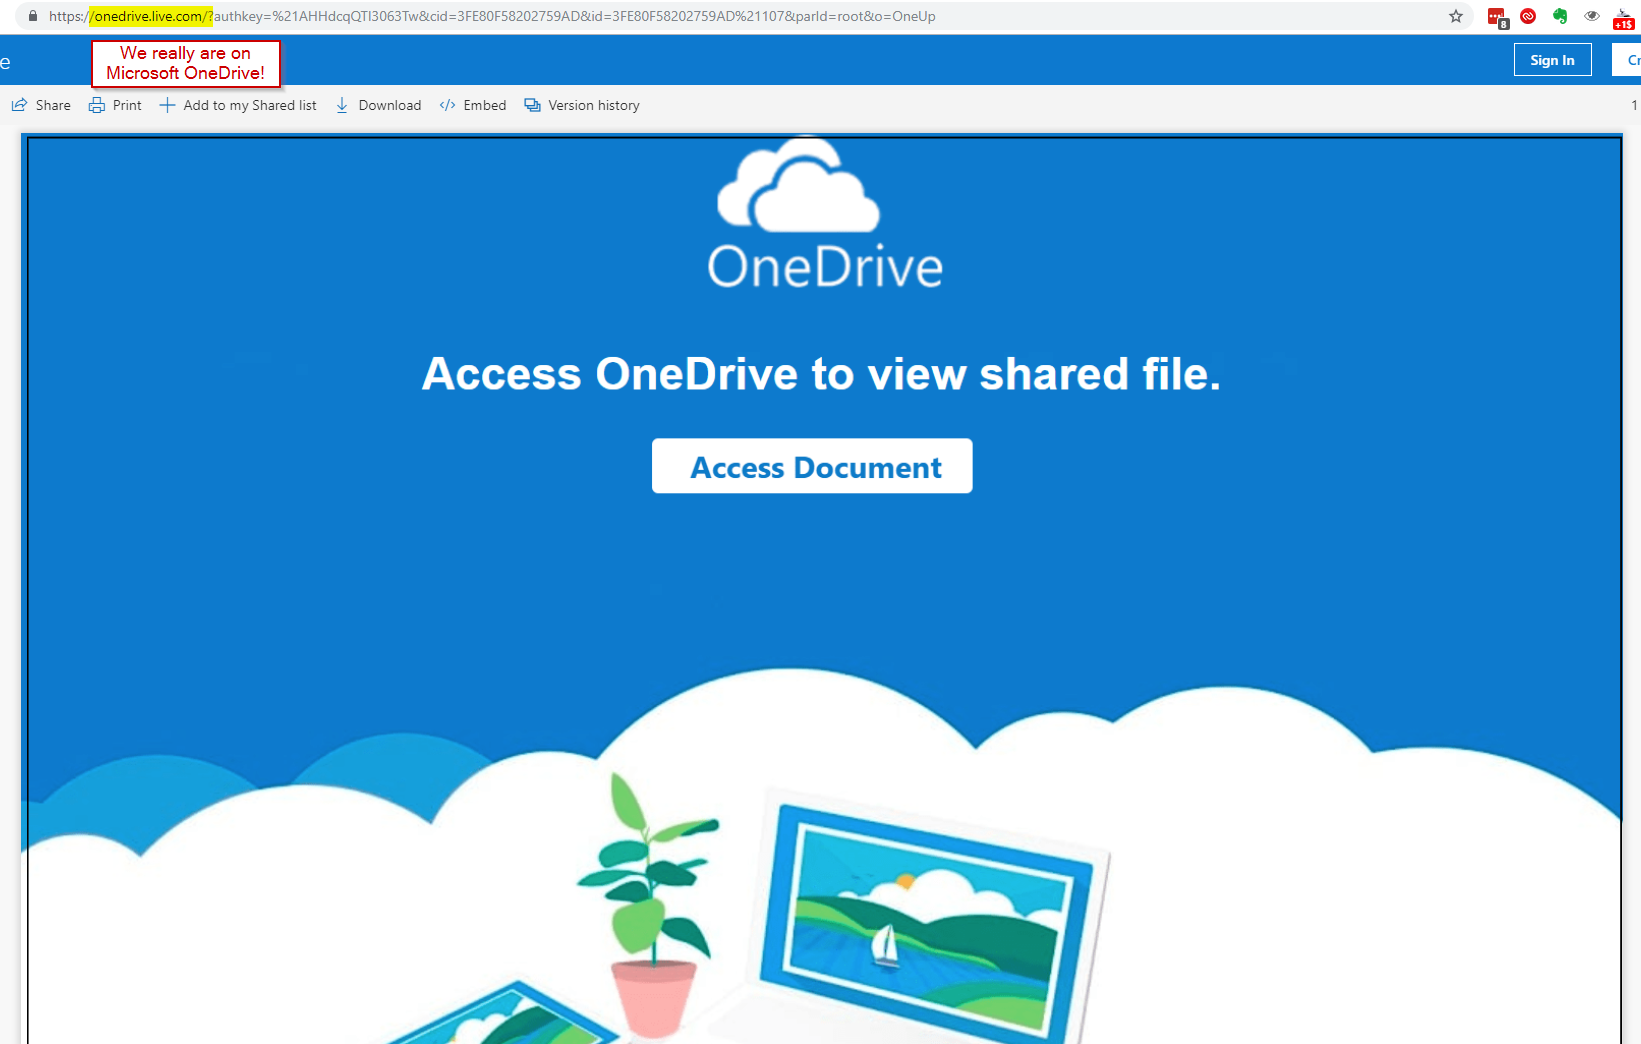 2 - OneDrive Sample 2.png